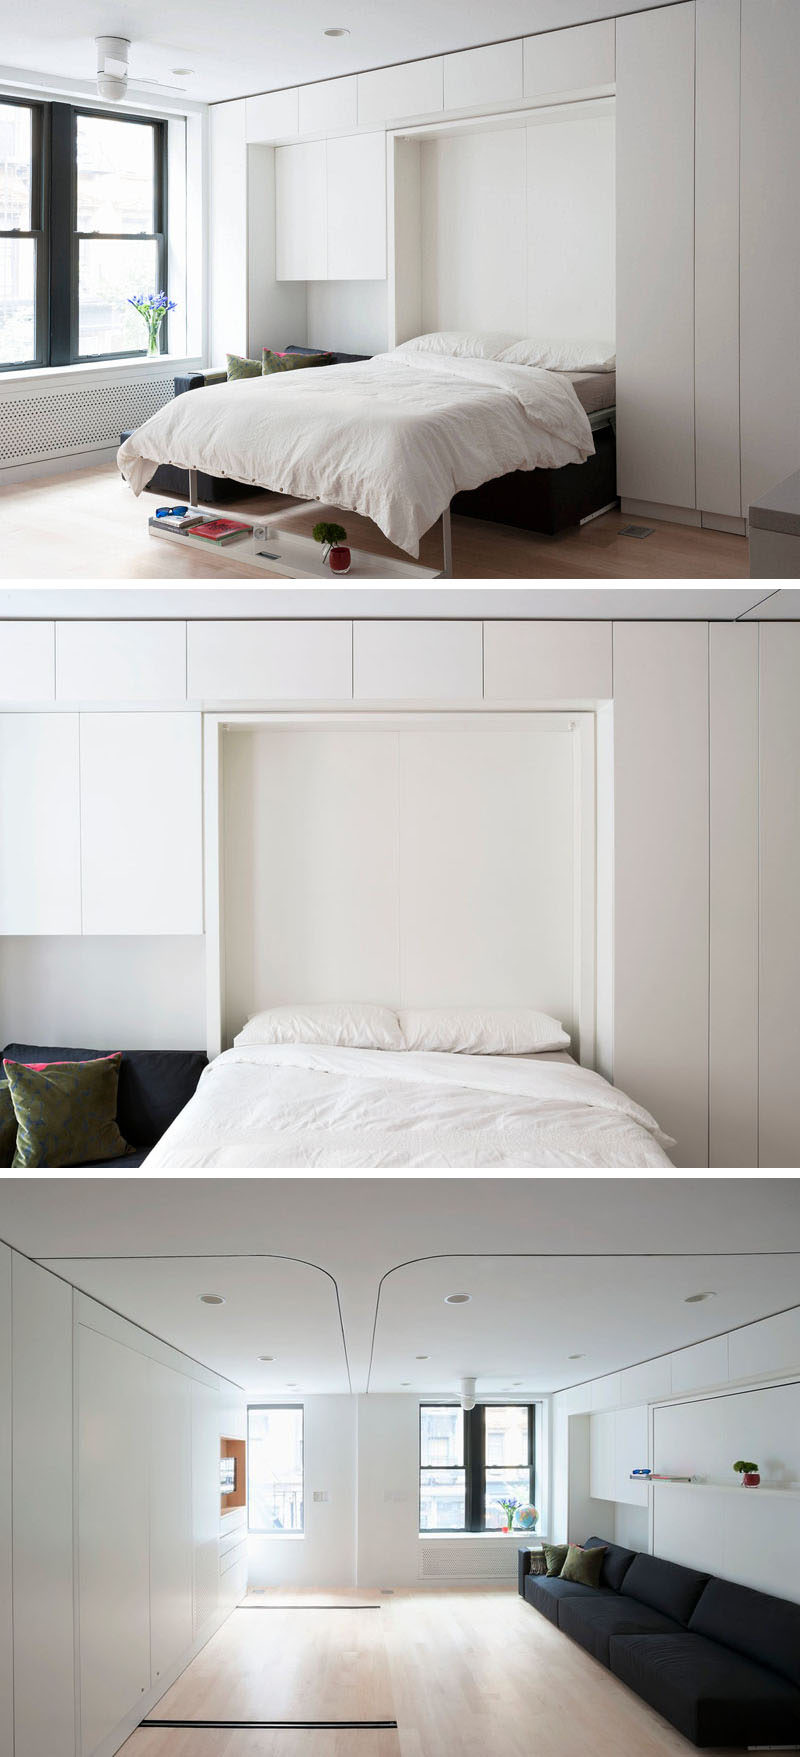 Captivating Bedroom Design Ideas   8 Ways To Create The Ultimate Bed Surround With  Storage //